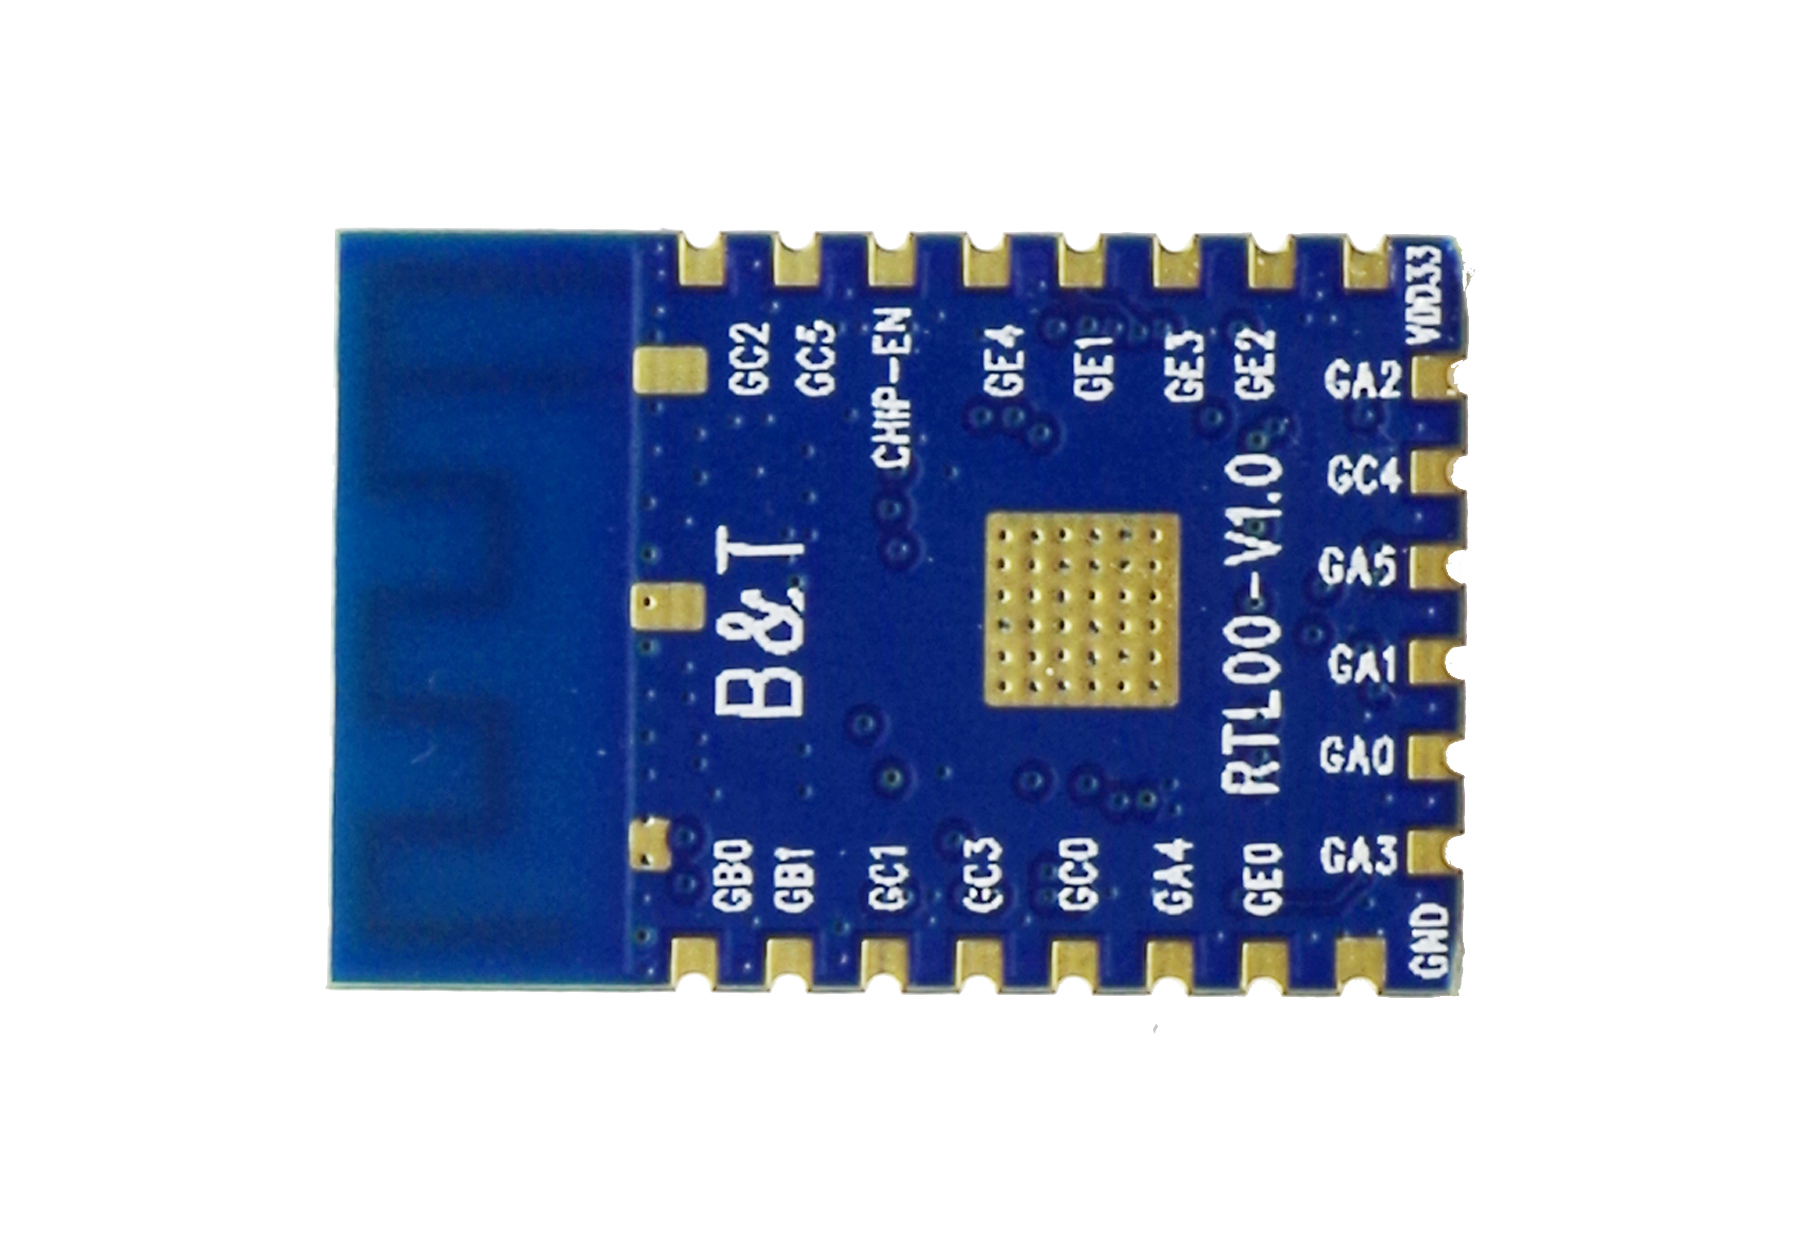 Realtek 8710 | Make: DIY Projects and Ideas for Makers